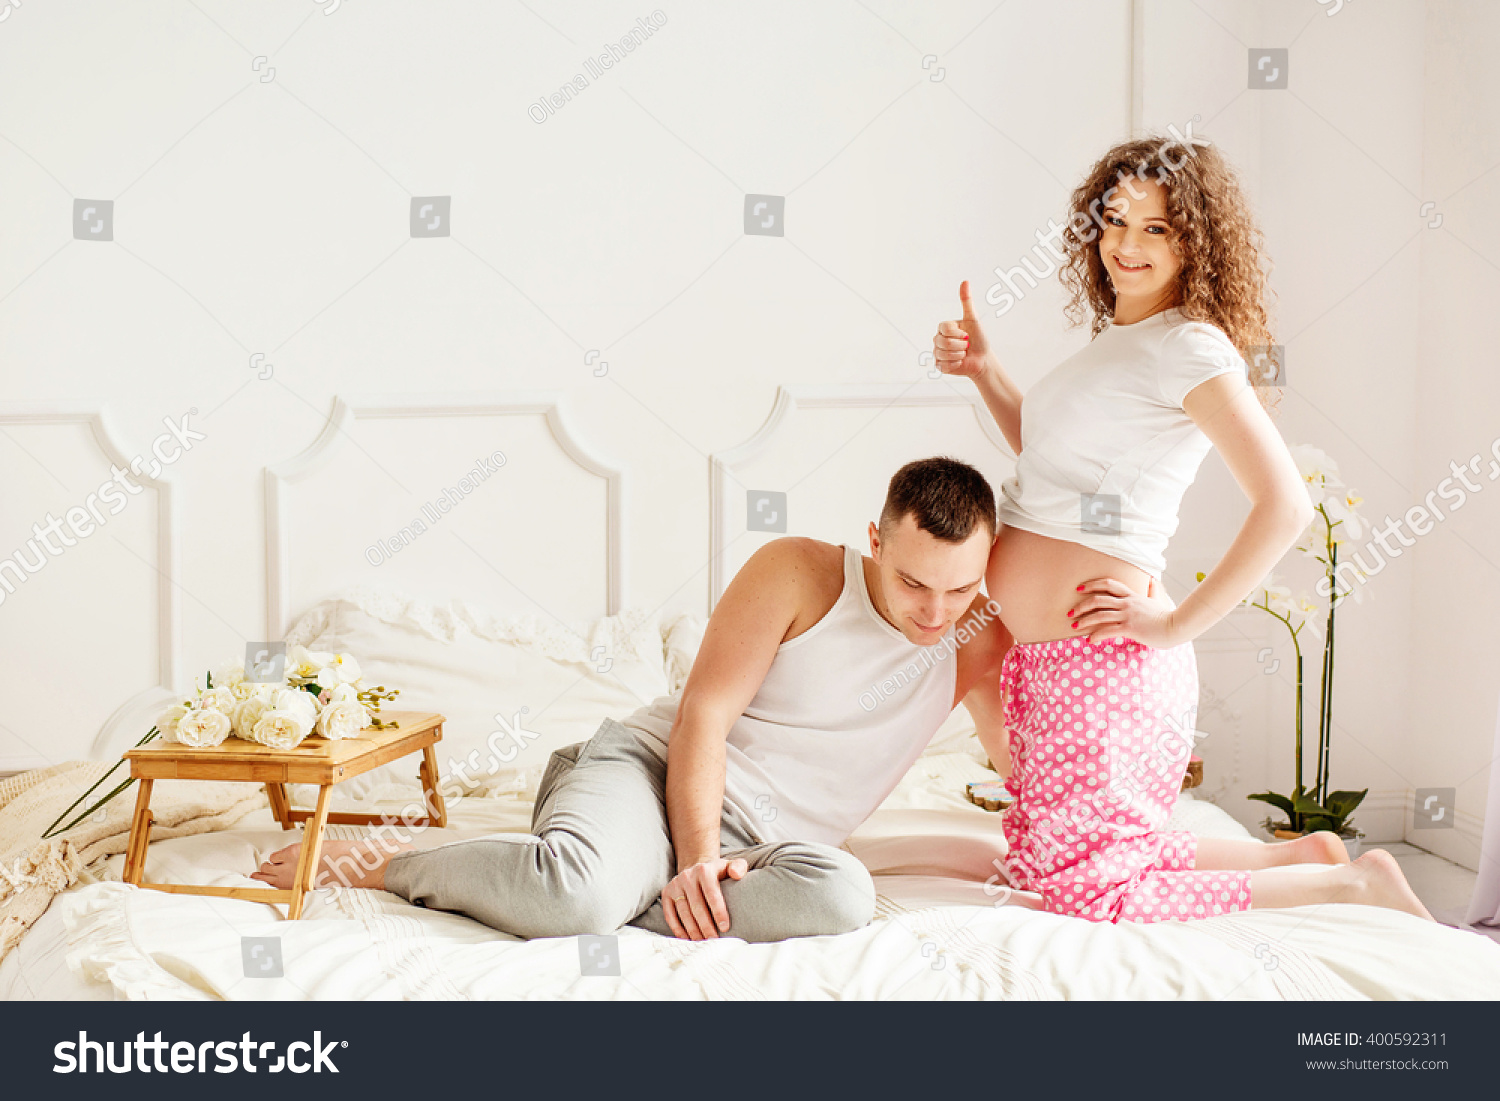 Beautiful couple love bedroom she pregnant stock photo for Love bedroom photo